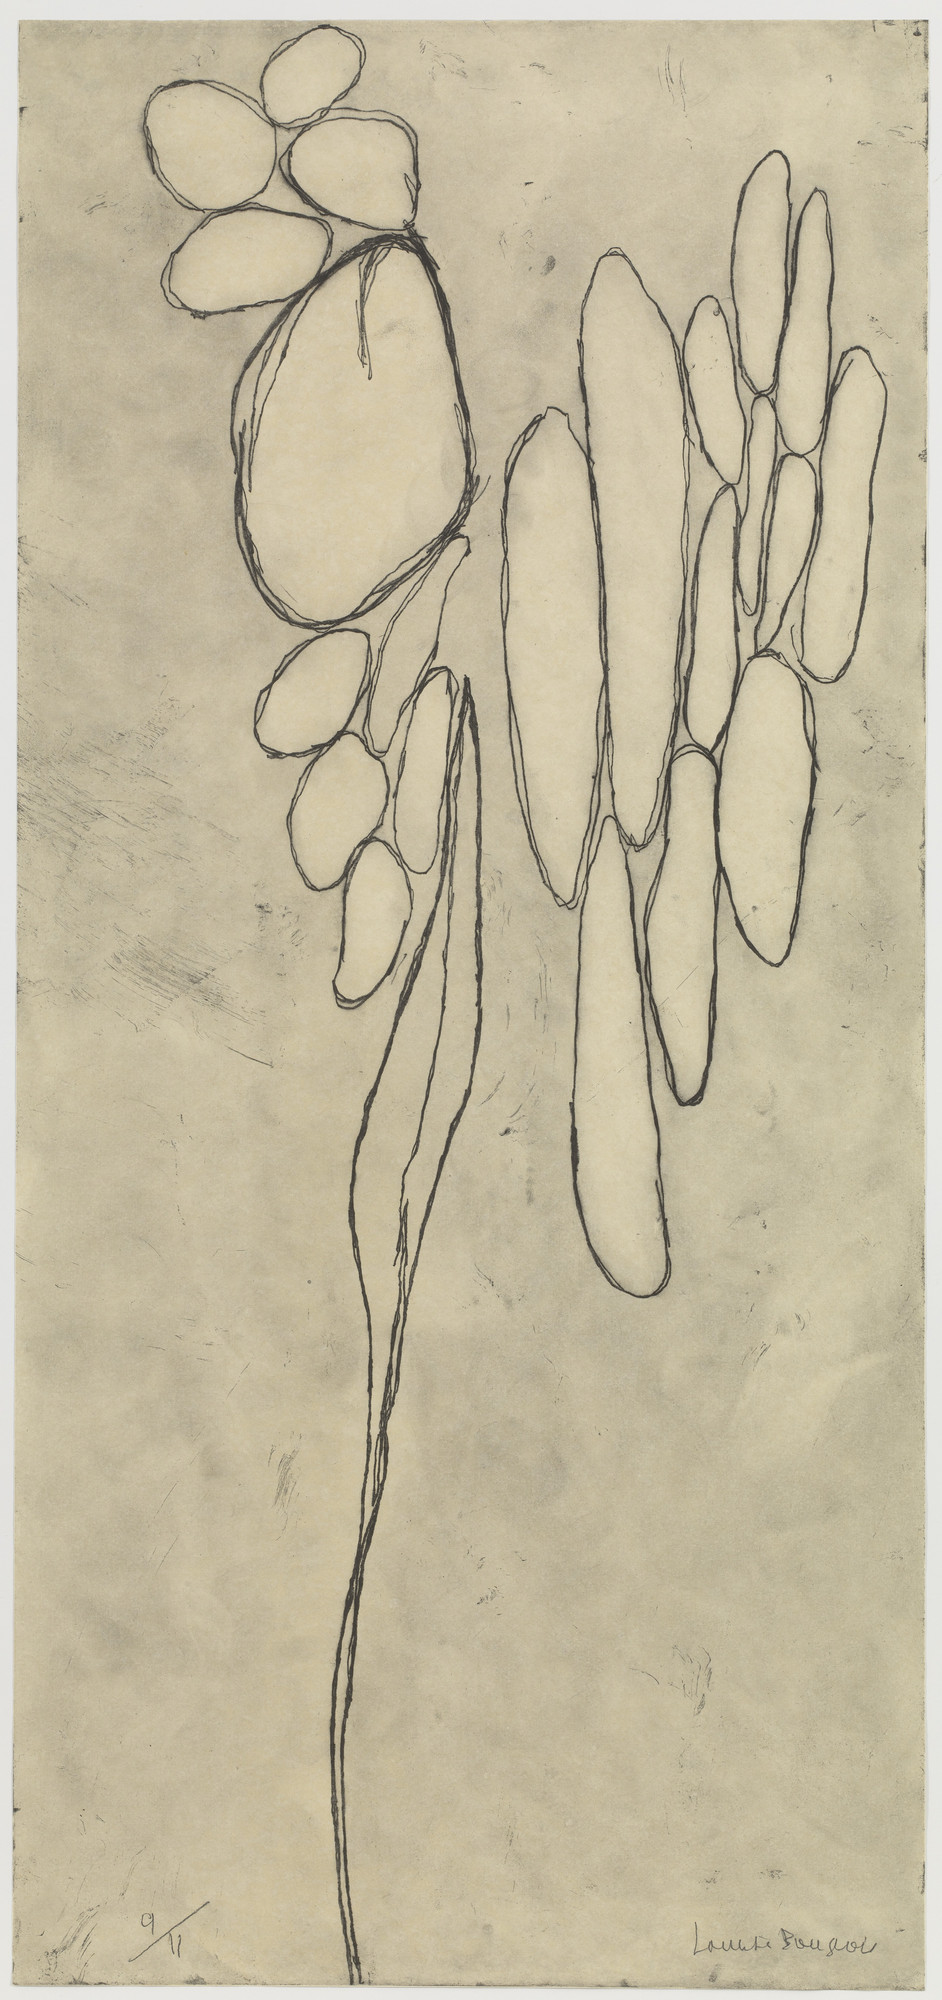 Louise Bourgeois. The Awakening. 2007